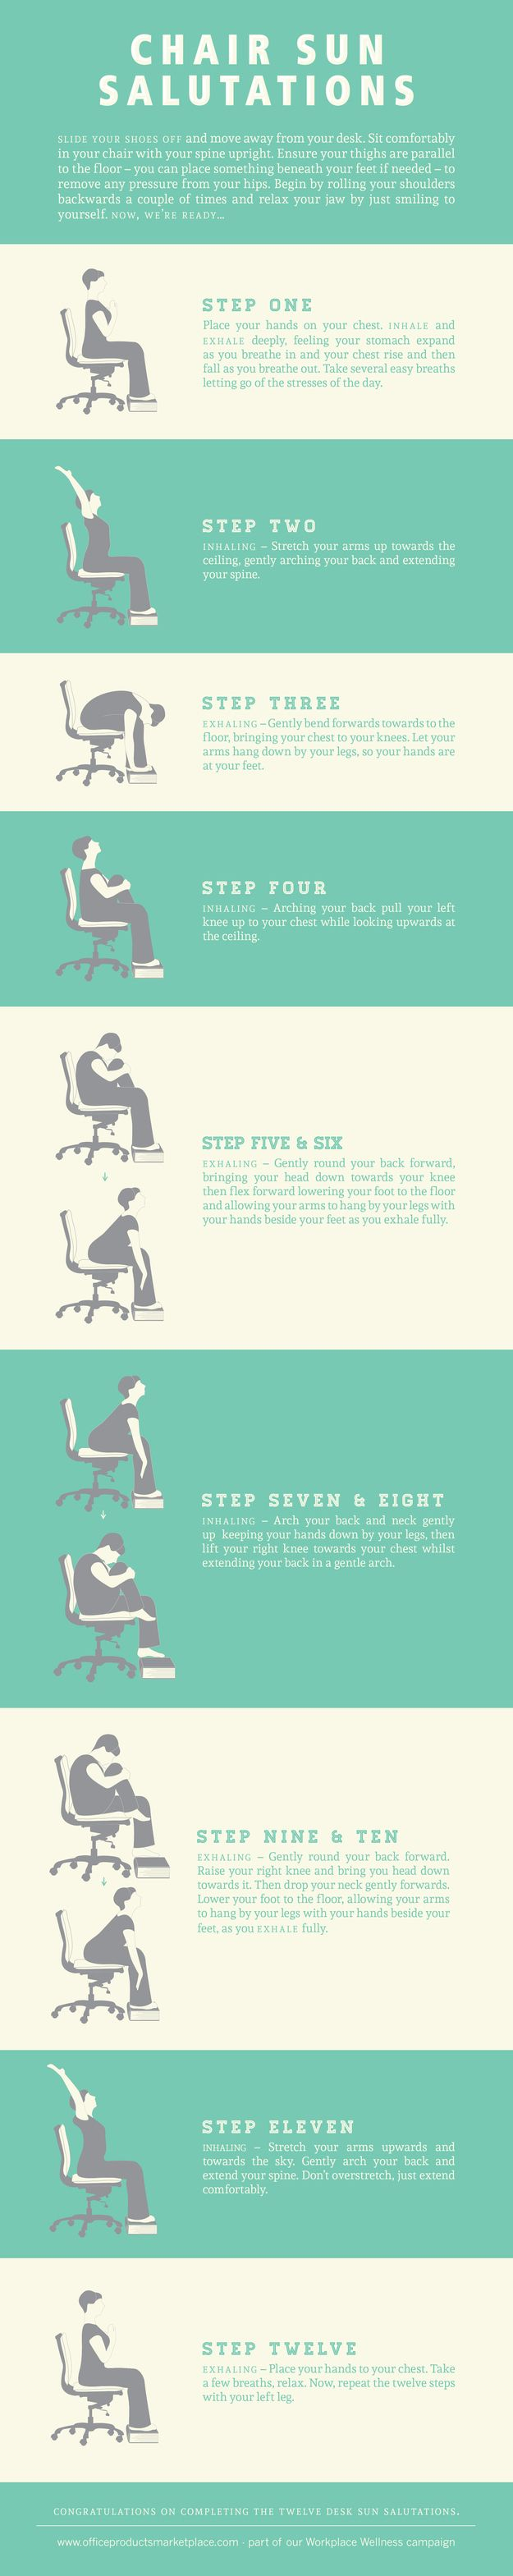 Chair yoga elderly - Desk Exercises To Make The Most Of Your Workday Chair Exercisesoffice Yogaoffice